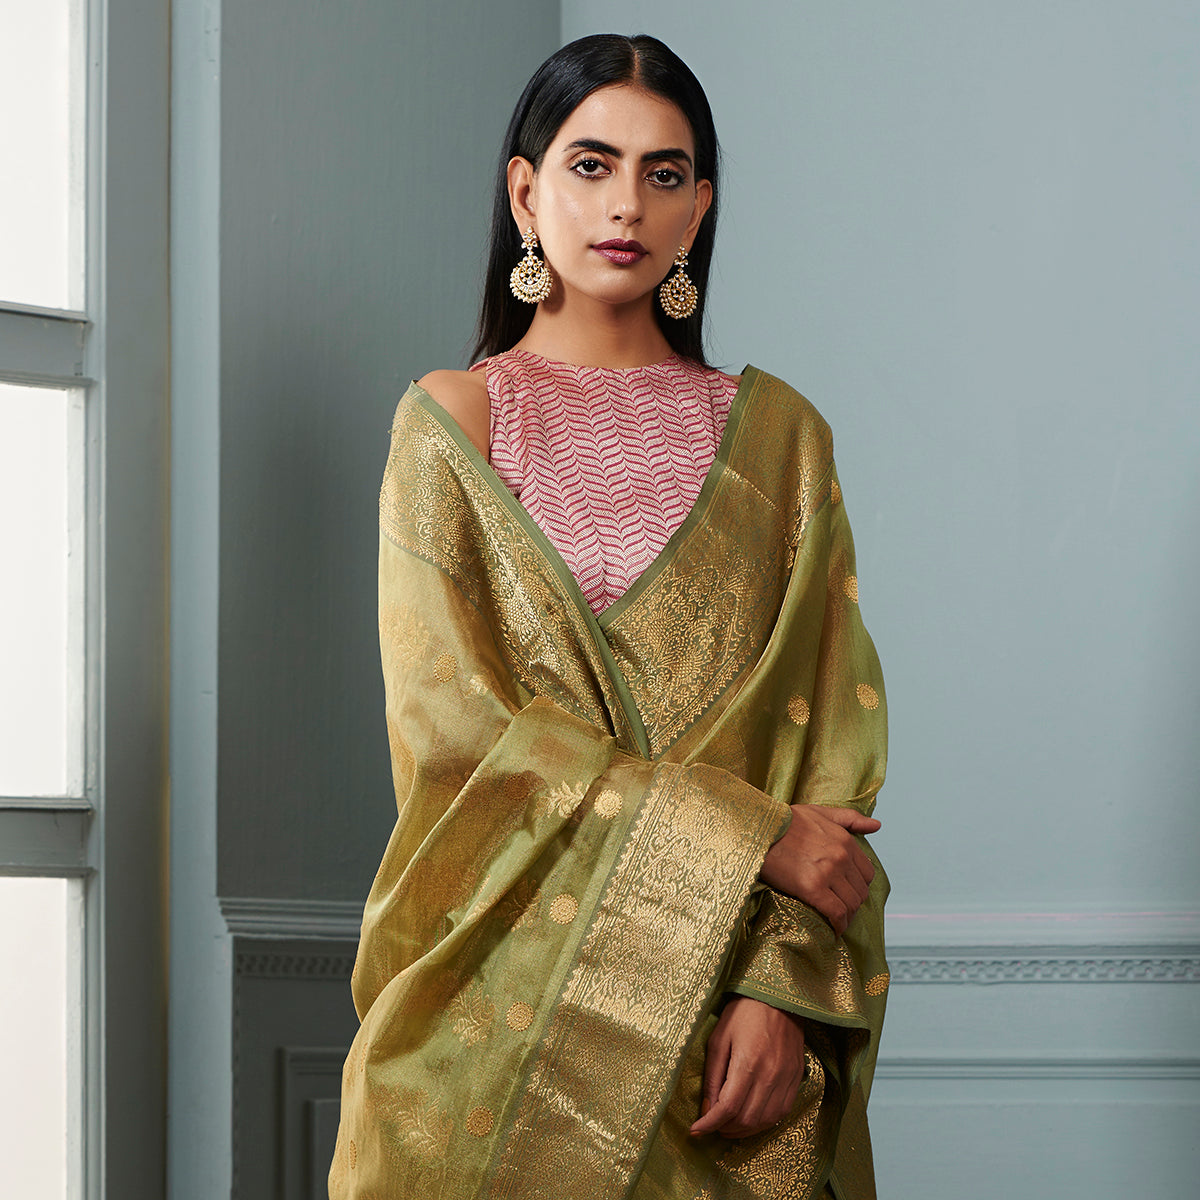 c2da1e43f6 Pista green Chanderi tissue silk saree with asharfi booti and meenakar -  WeaverStory